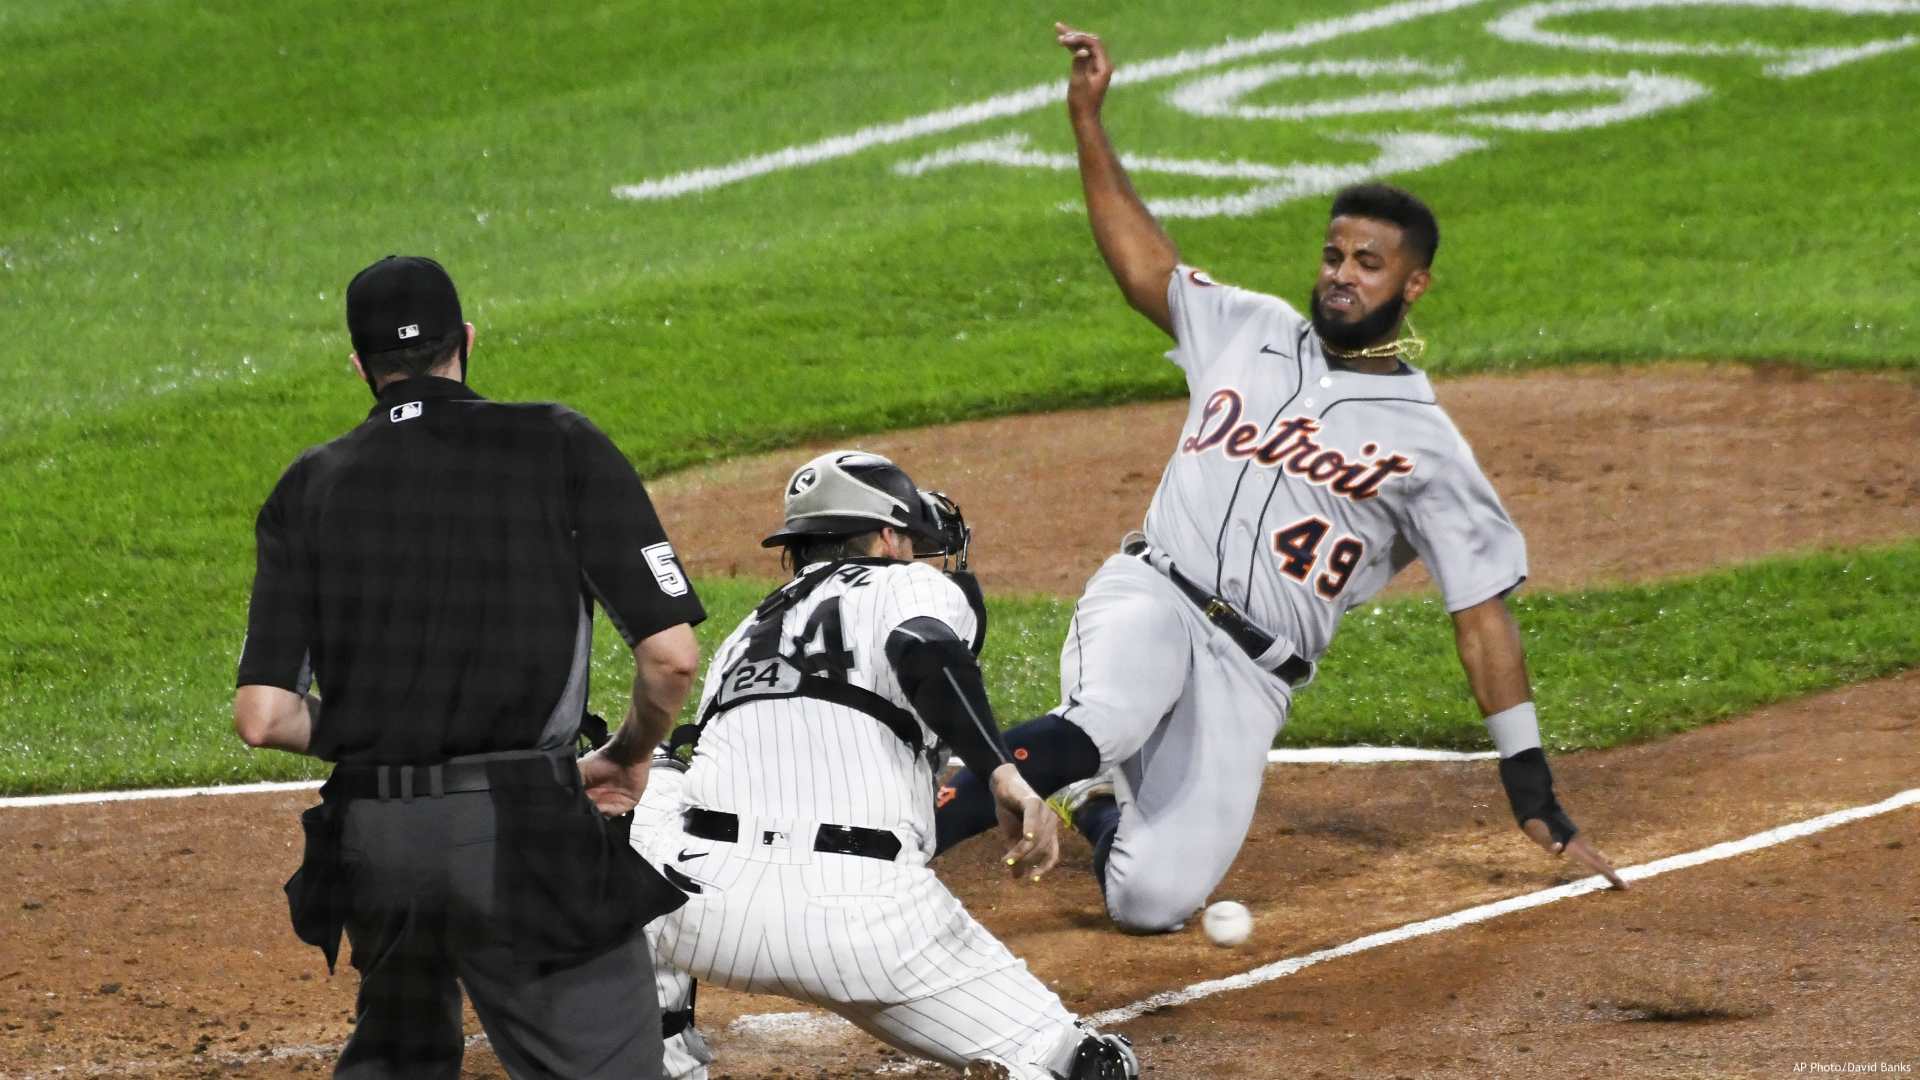 Chicago White Sox catcher Yasmani Grandal (24) prepares to tag Willi Castro (49) out at home plate during the fourth inning of a baseball game, Saturday, Sept.12, 2020, in Chicago. (AP Photo/David Banks)